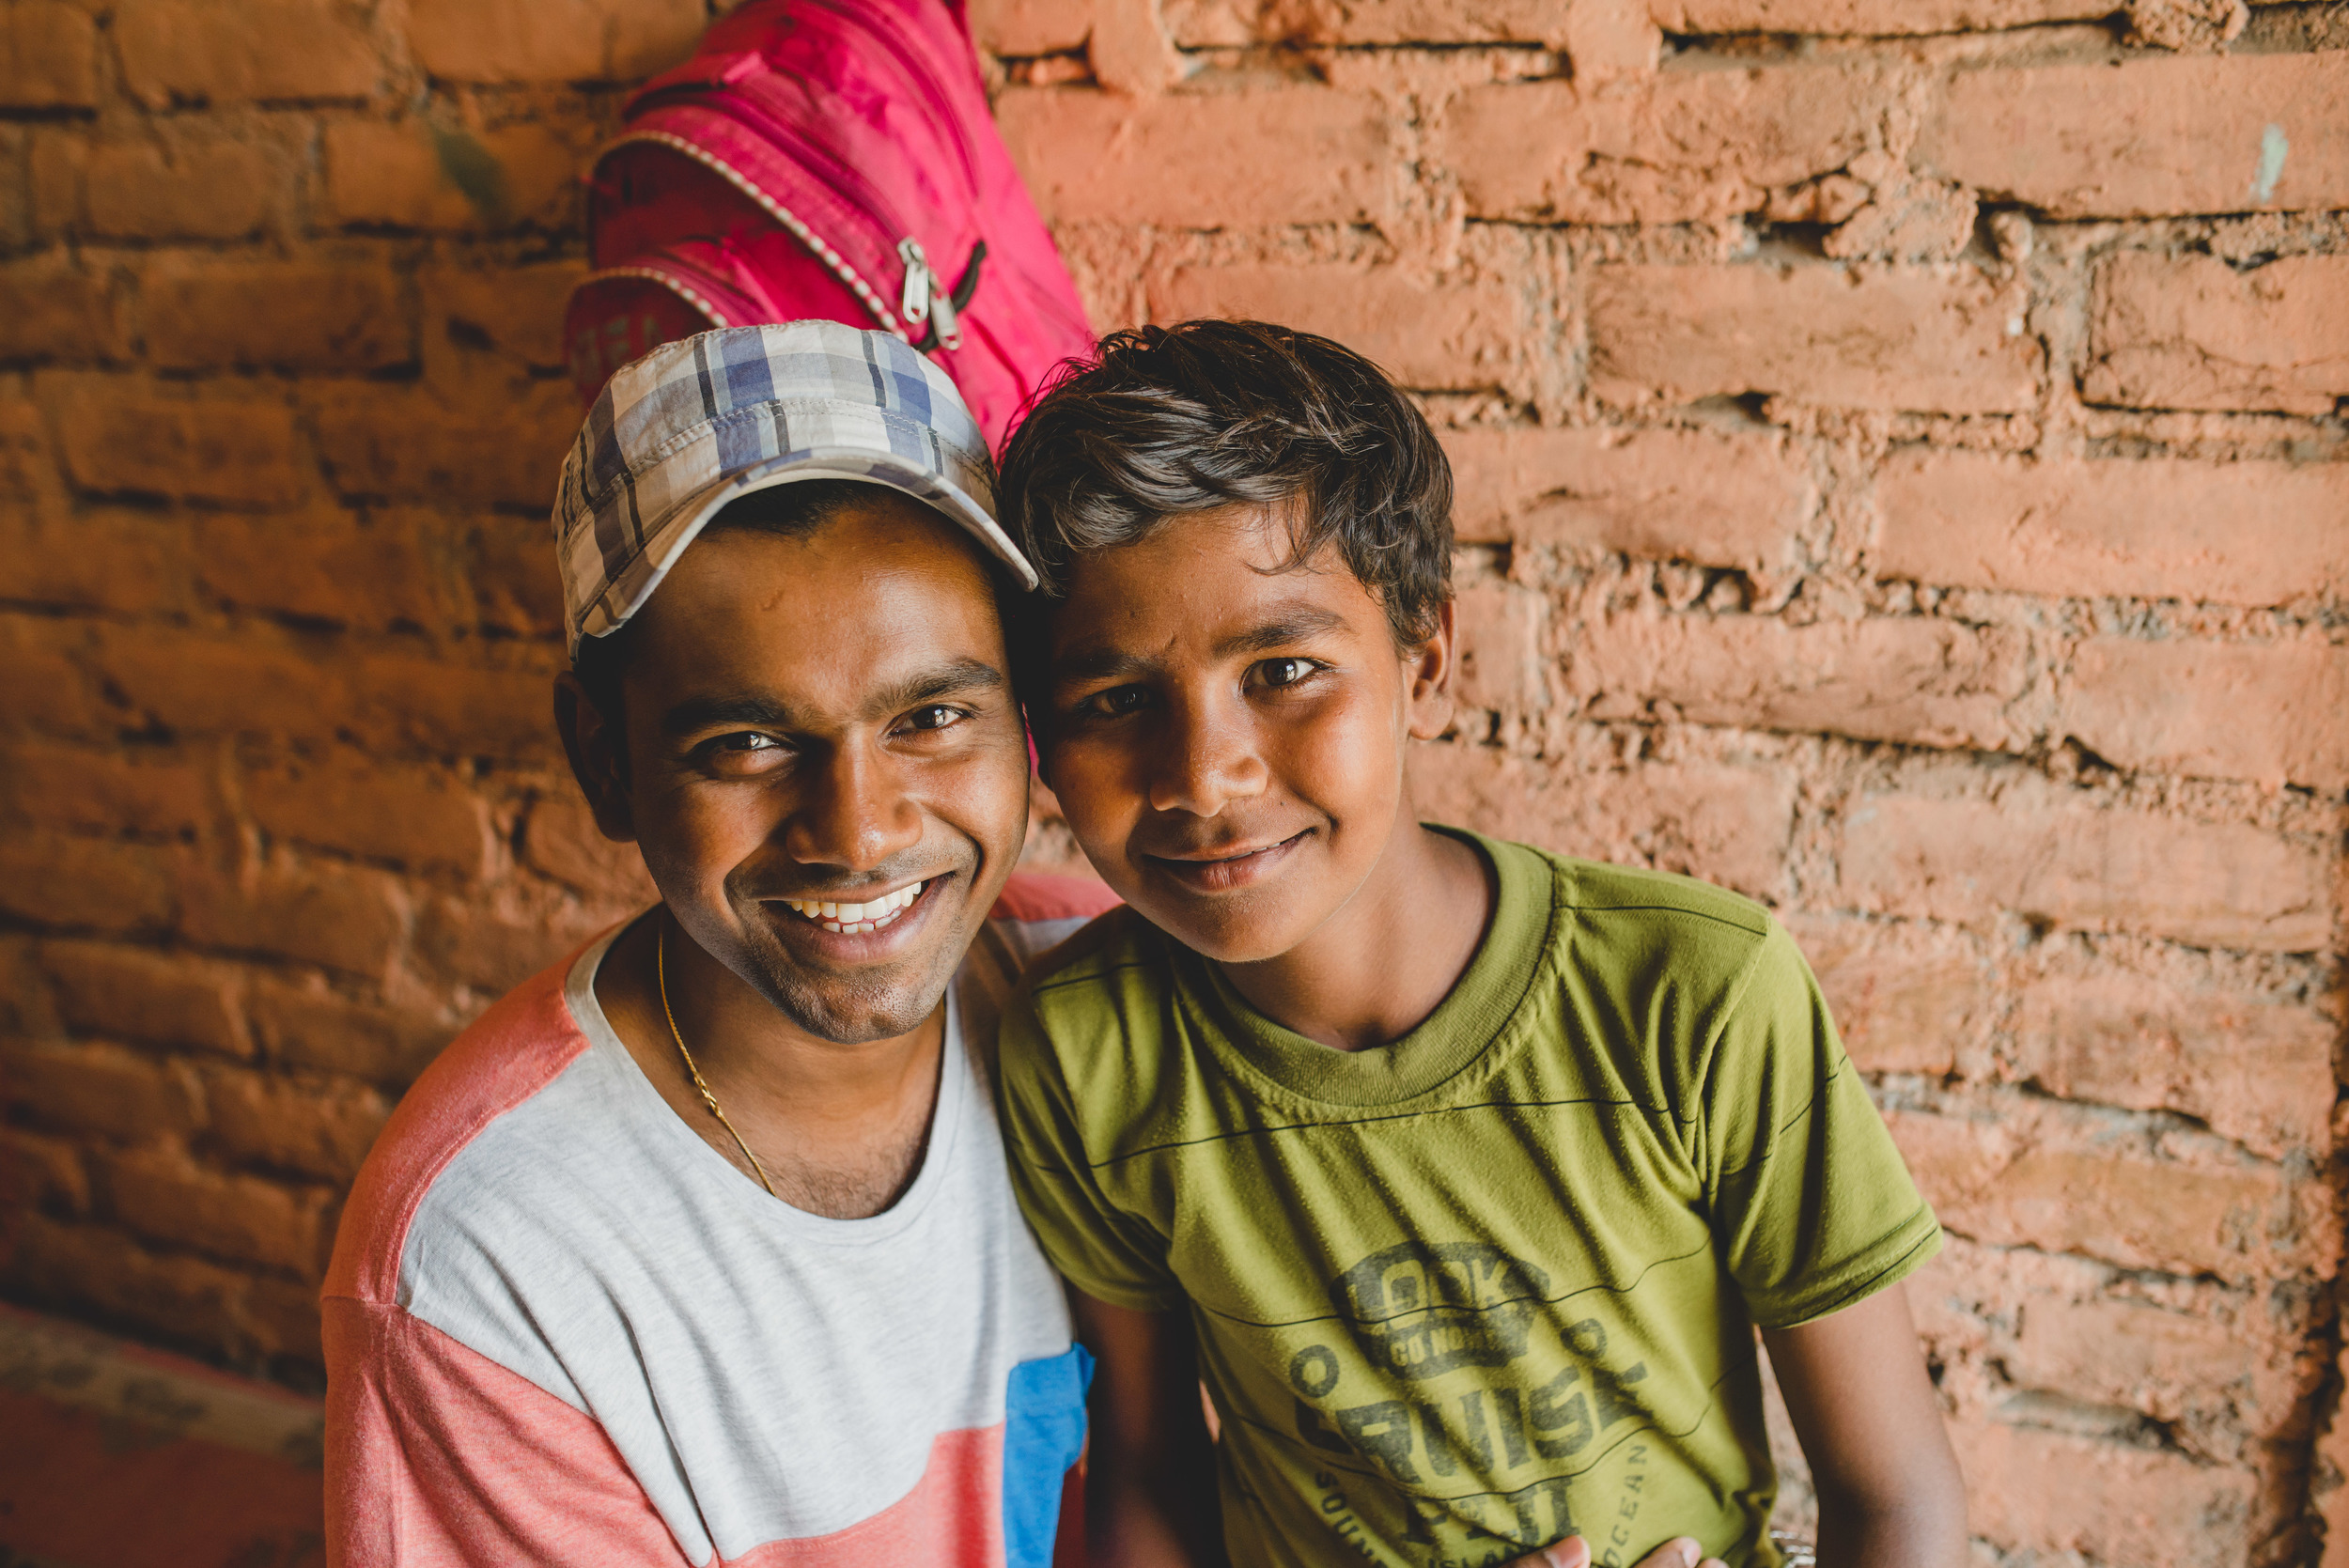 """Manohar works with our organization in India. During the time our team was in India, Manohar accompanied us as we worked with children and visited families. Afterwards, he shared his story. This is part of that story: """"It is so amazing for me to see the way this entire trip was planned. Whether we went to the school, to the slum, or to the neighborhood, I was reminded of my childhood and related to the people because I grew up in the same kind of place. We lived in a house with one room for five people. We would get water twice a day between 5 and 7 in the morning and 5 and 7 in the evening. Like the neighborhood we went to yesterday, the place I lived had about 40 or 50 families but we only had one pipe for everyone to get water for your house, to take a shower or wash clothes. Later, as I grew older I thought every person should have a place to take a bath privately. When I was in that neighborhood, it was so easy for me to connect to the families because I know what they must be feeling and what they are going through."""""""